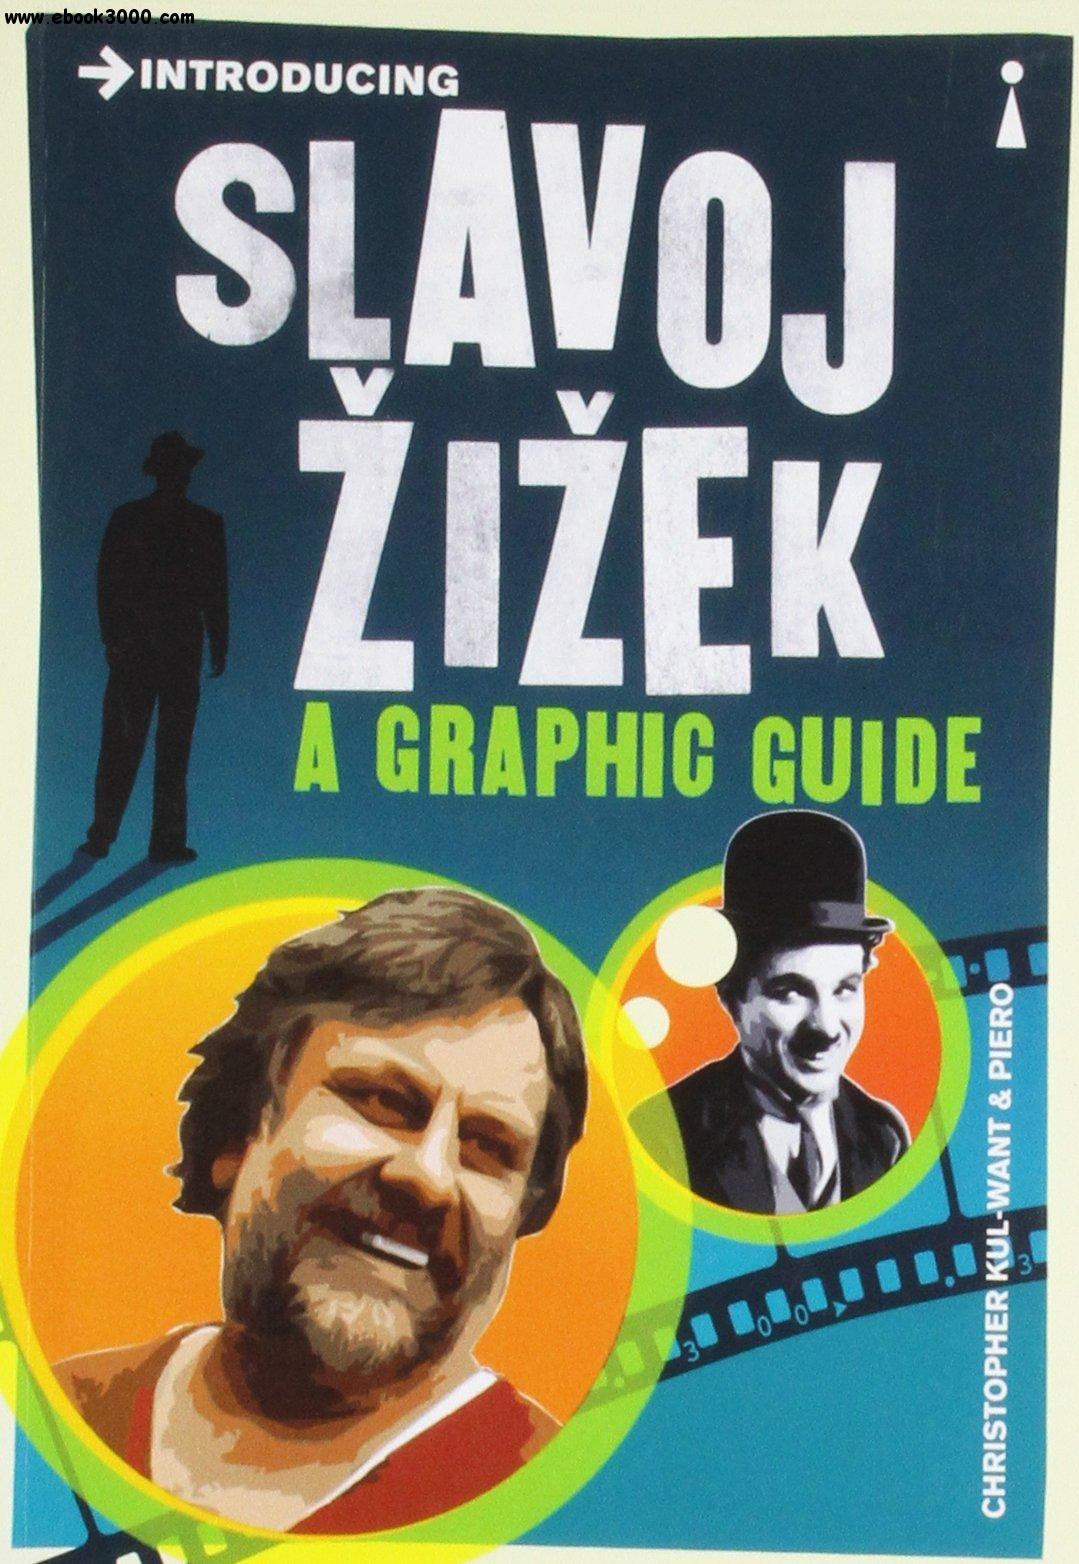 Introducing Slavoj Zizek: A Graphic Guide free download